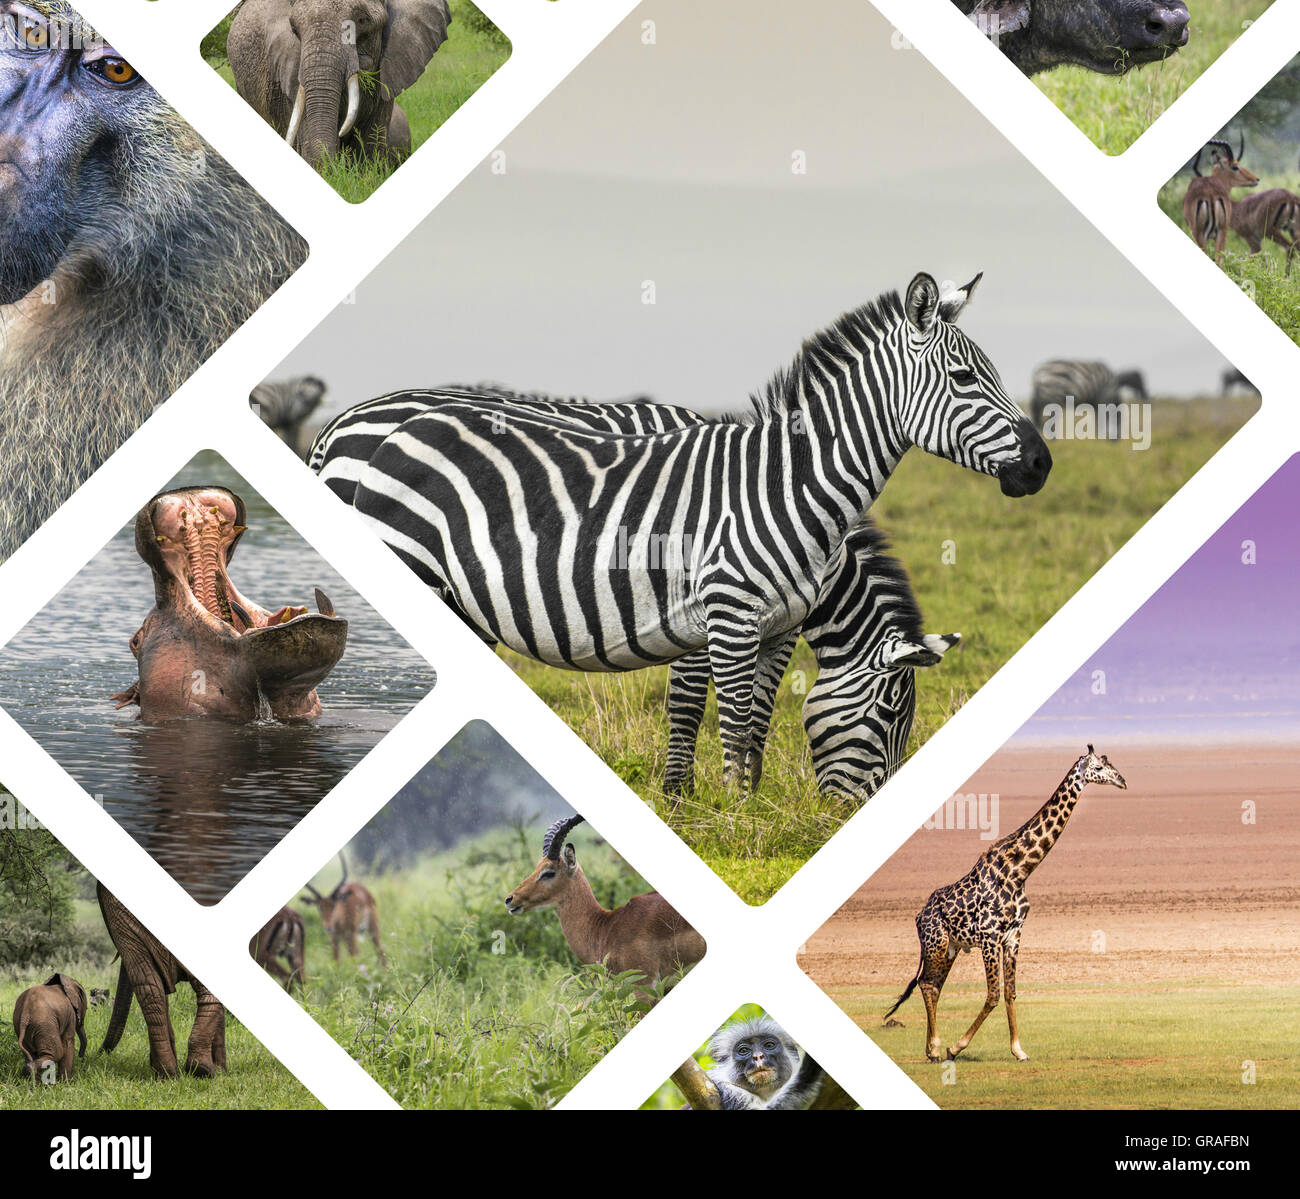 Collage Of Animals From Tanzania